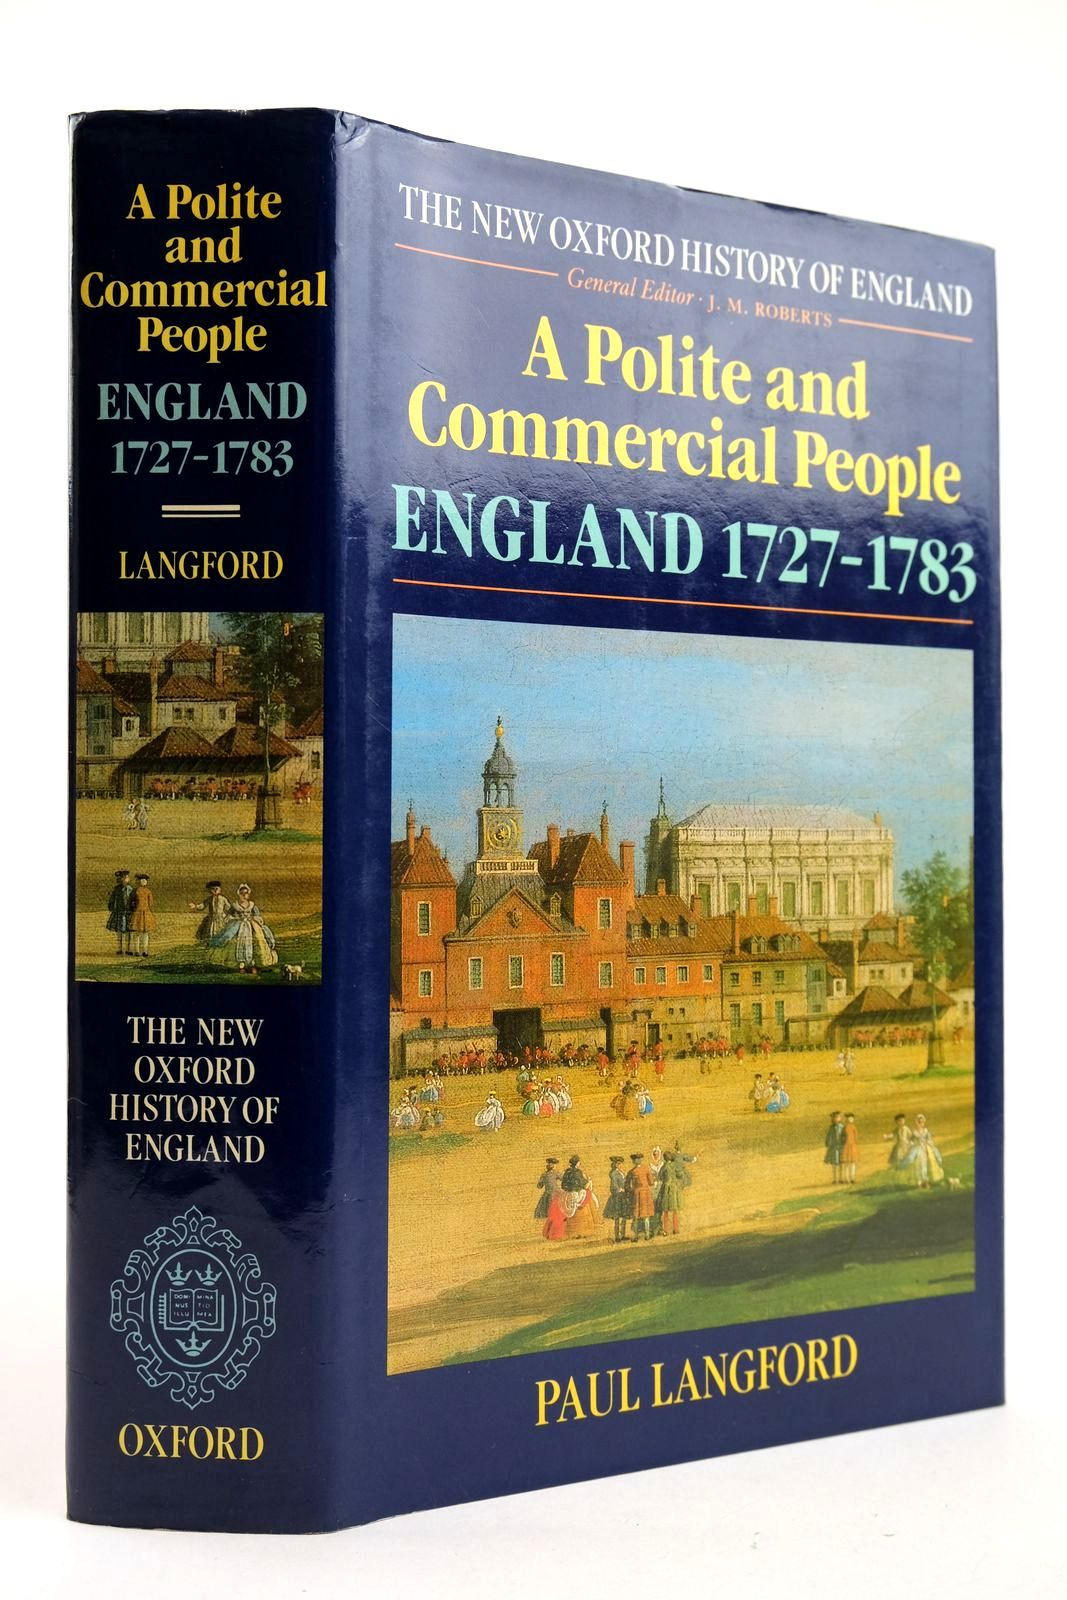 Photo of A POLITE AND COMMERCIAL PEOPLE ENGLAND 1727-1783 written by Langford, Paul published by Clarendon Press (STOCK CODE: 2132940)  for sale by Stella & Rose's Books